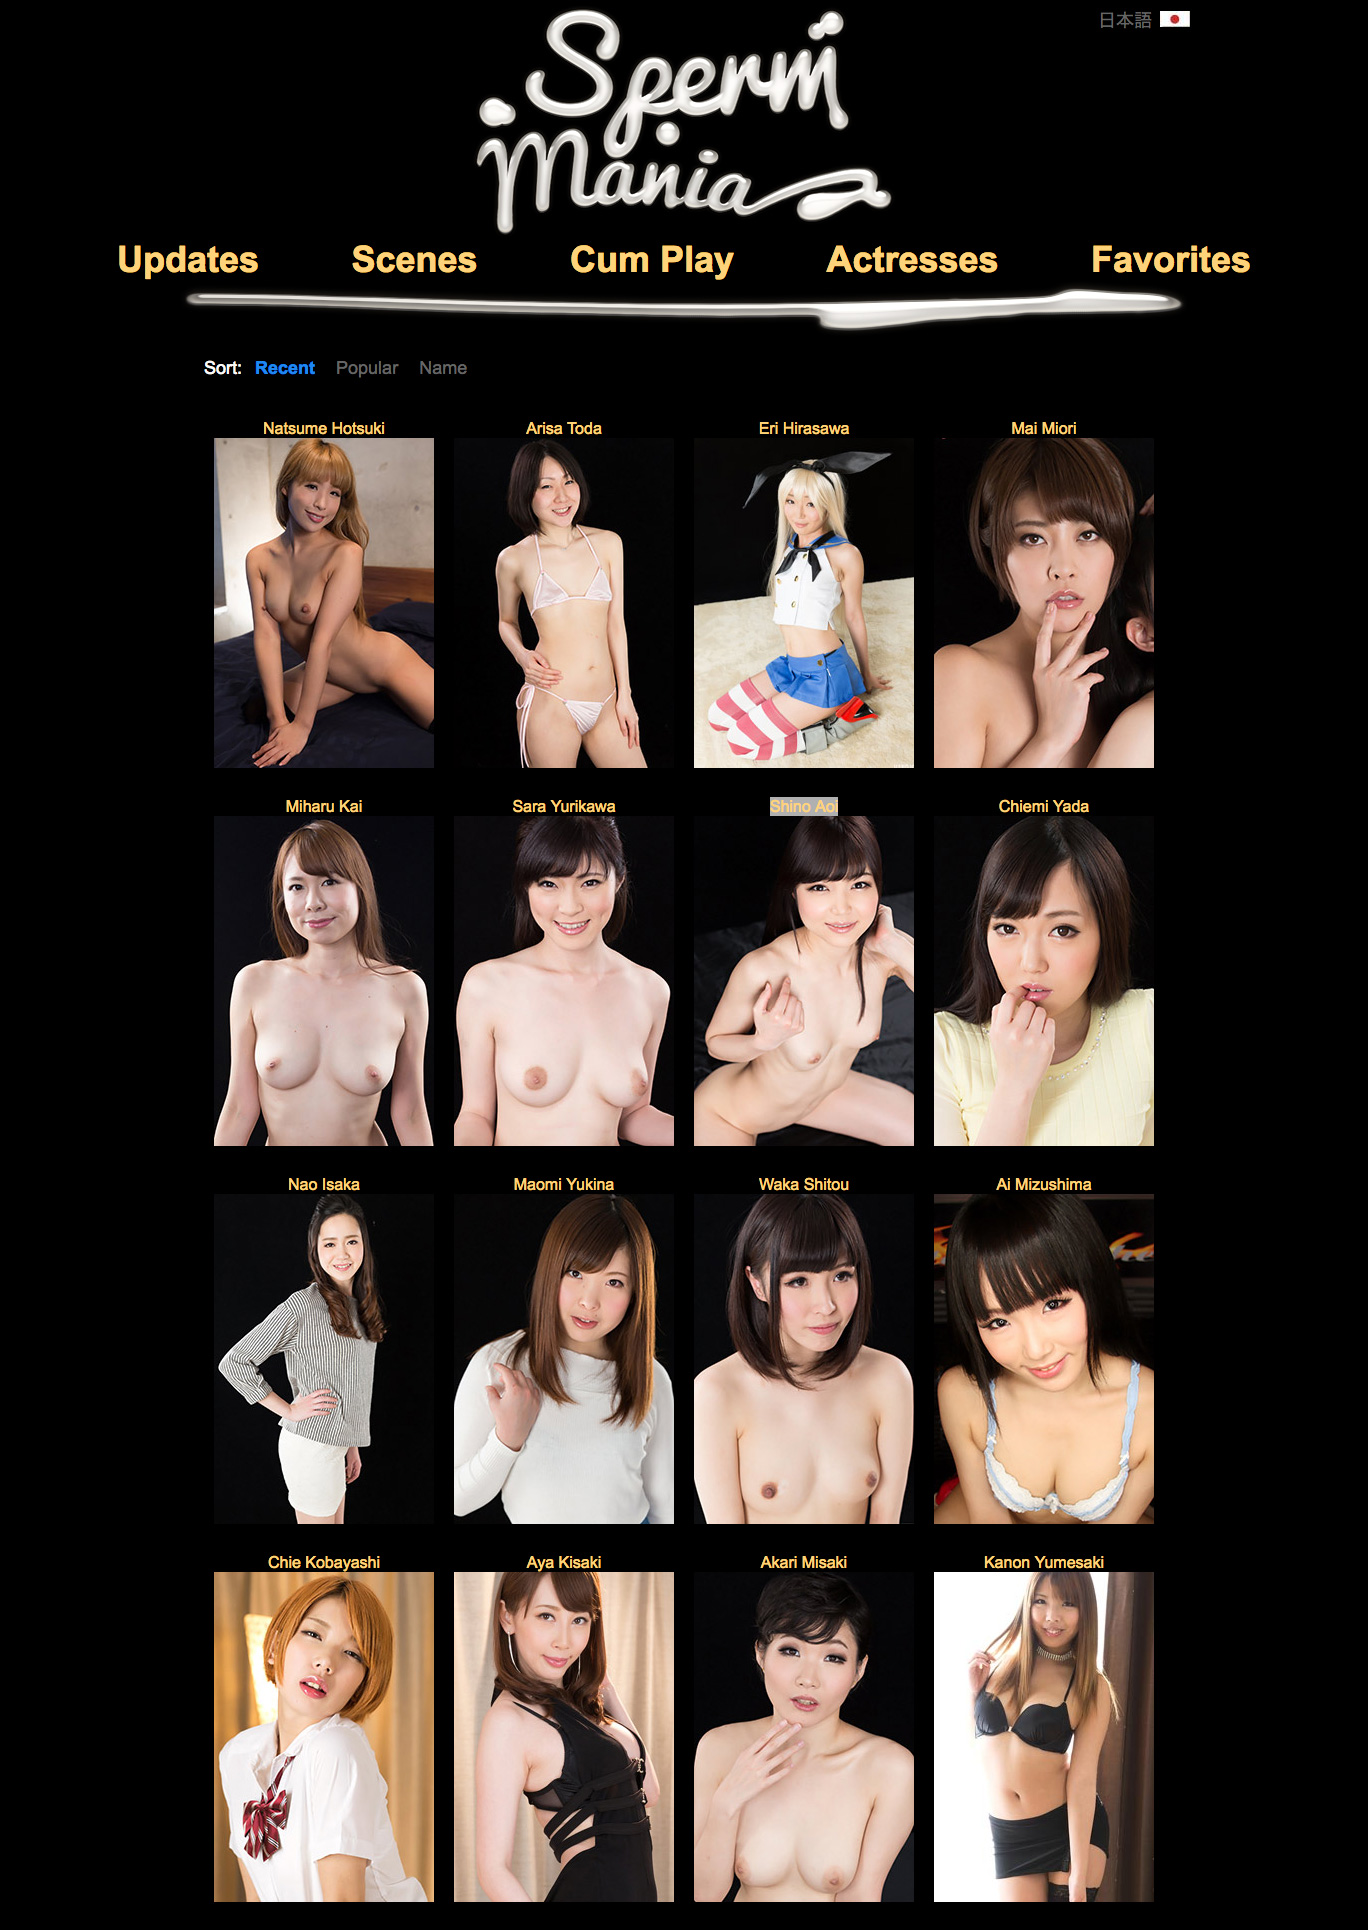 Sperm Mania eri hirasawa members only models